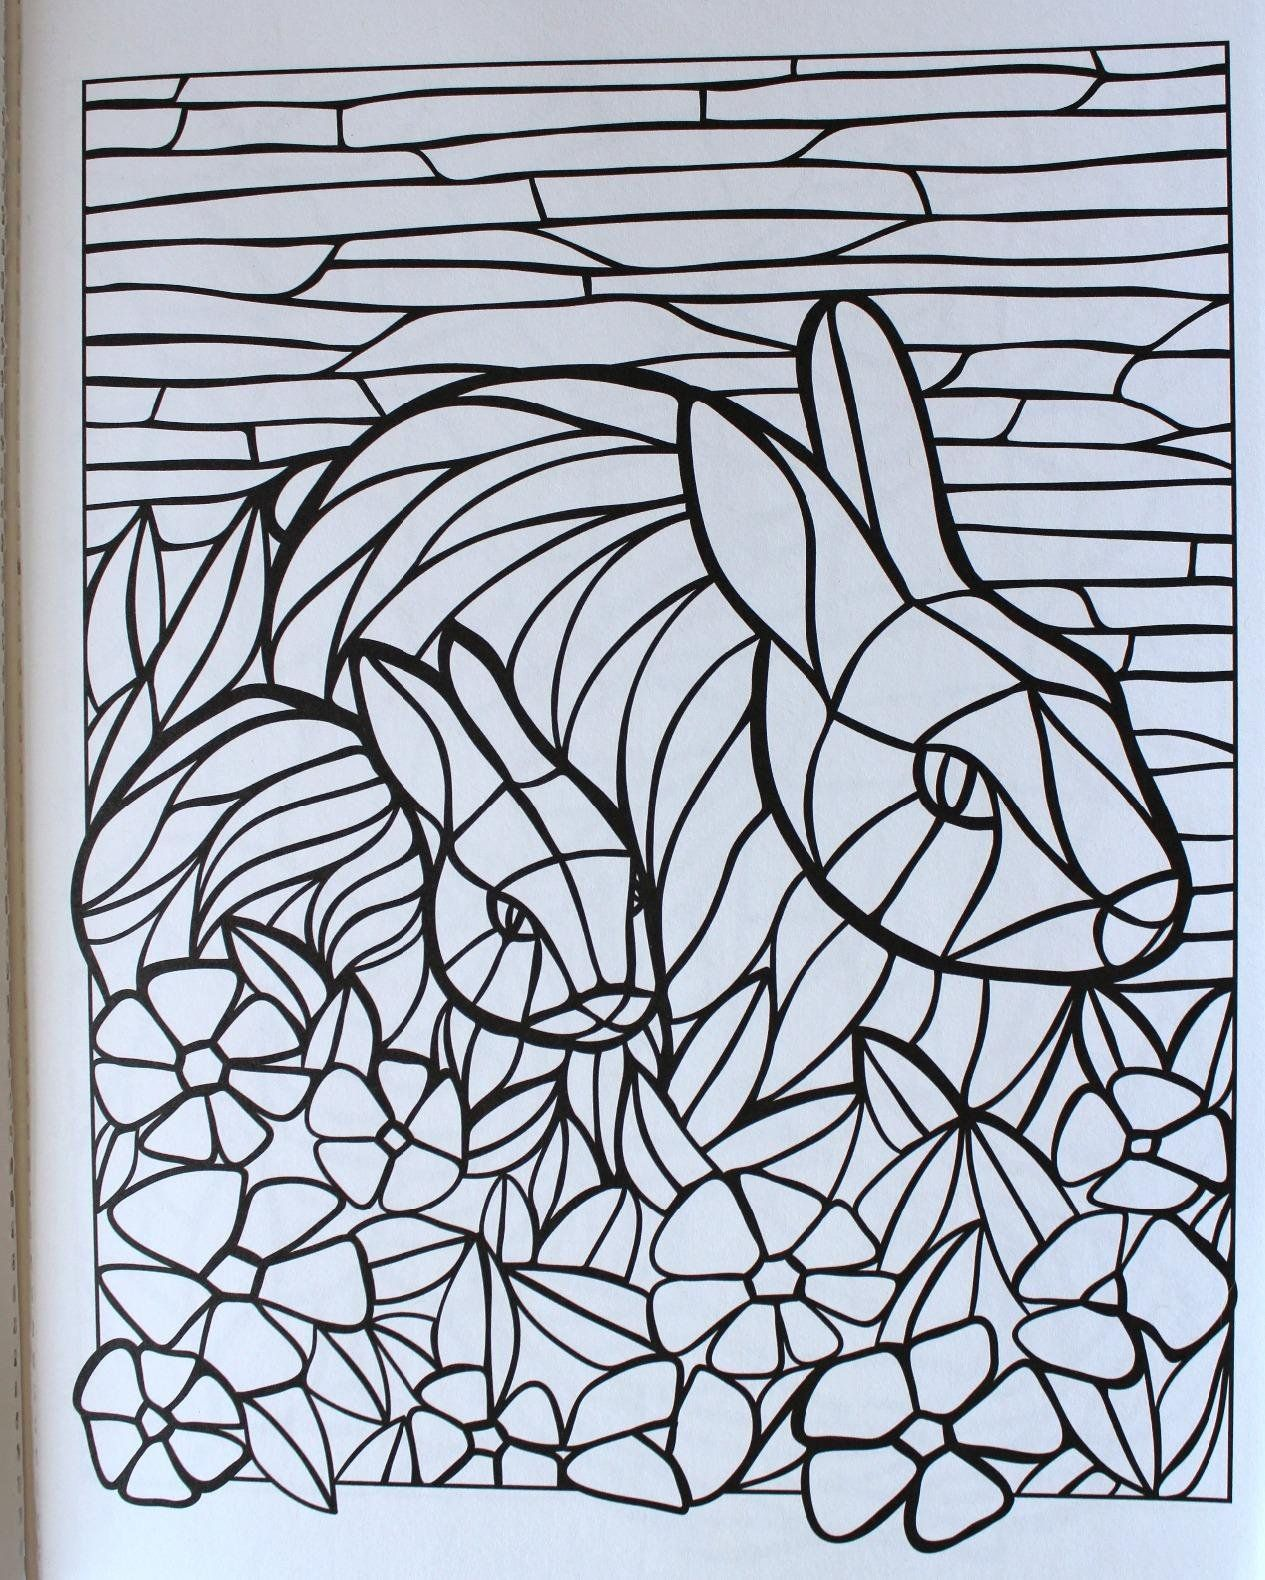 Creative Haven Animal Mosaics Coloring Book Creative Haven Coloring Books Jessica Mazurki Animal Coloring Pages Creative Haven Coloring Books Coloring Pages